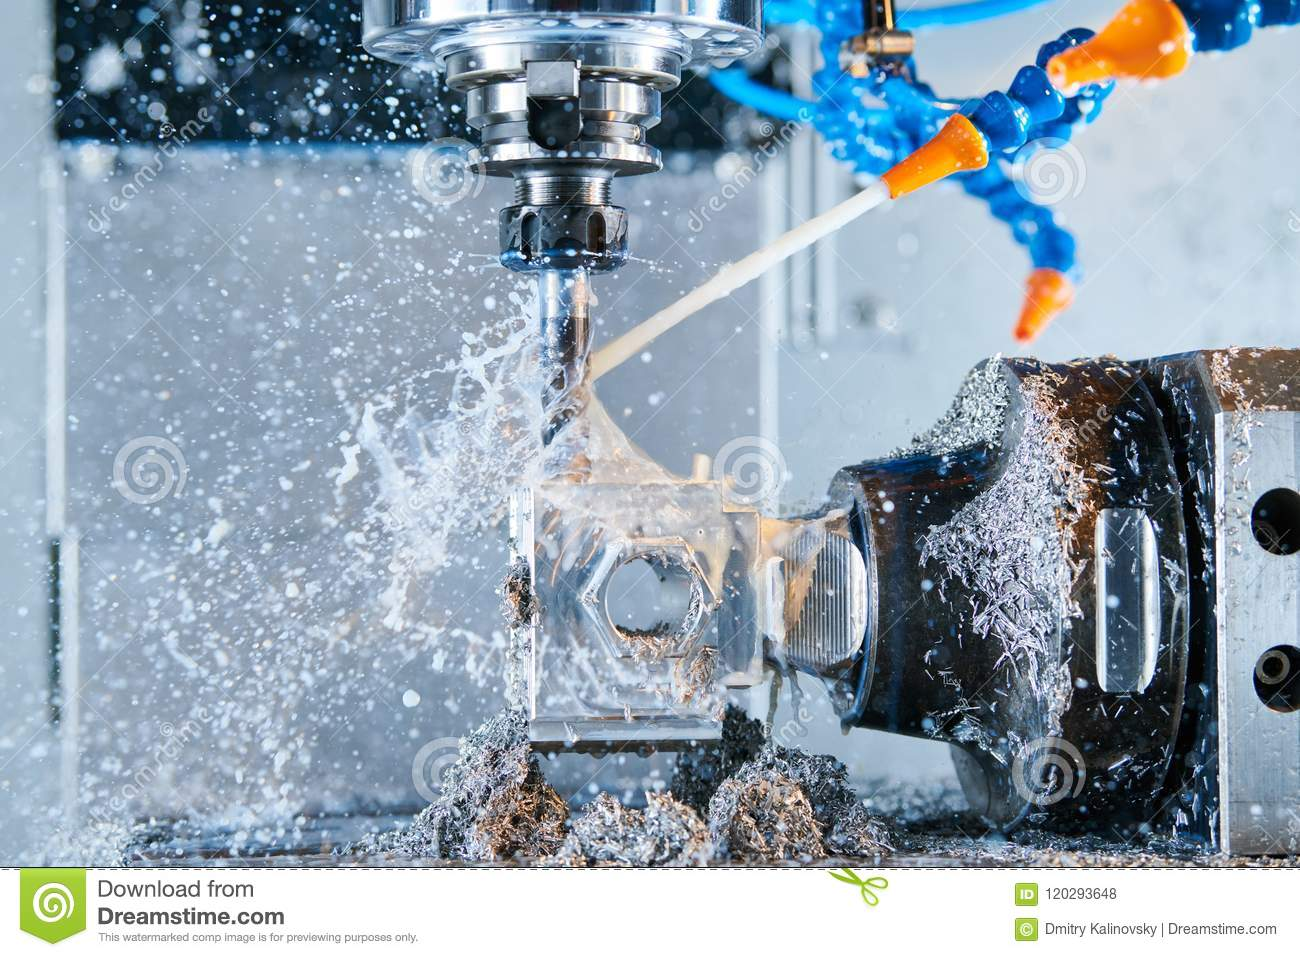 Milling metalworking. CNC metal machining by vertical mill. Coolant and lubrication